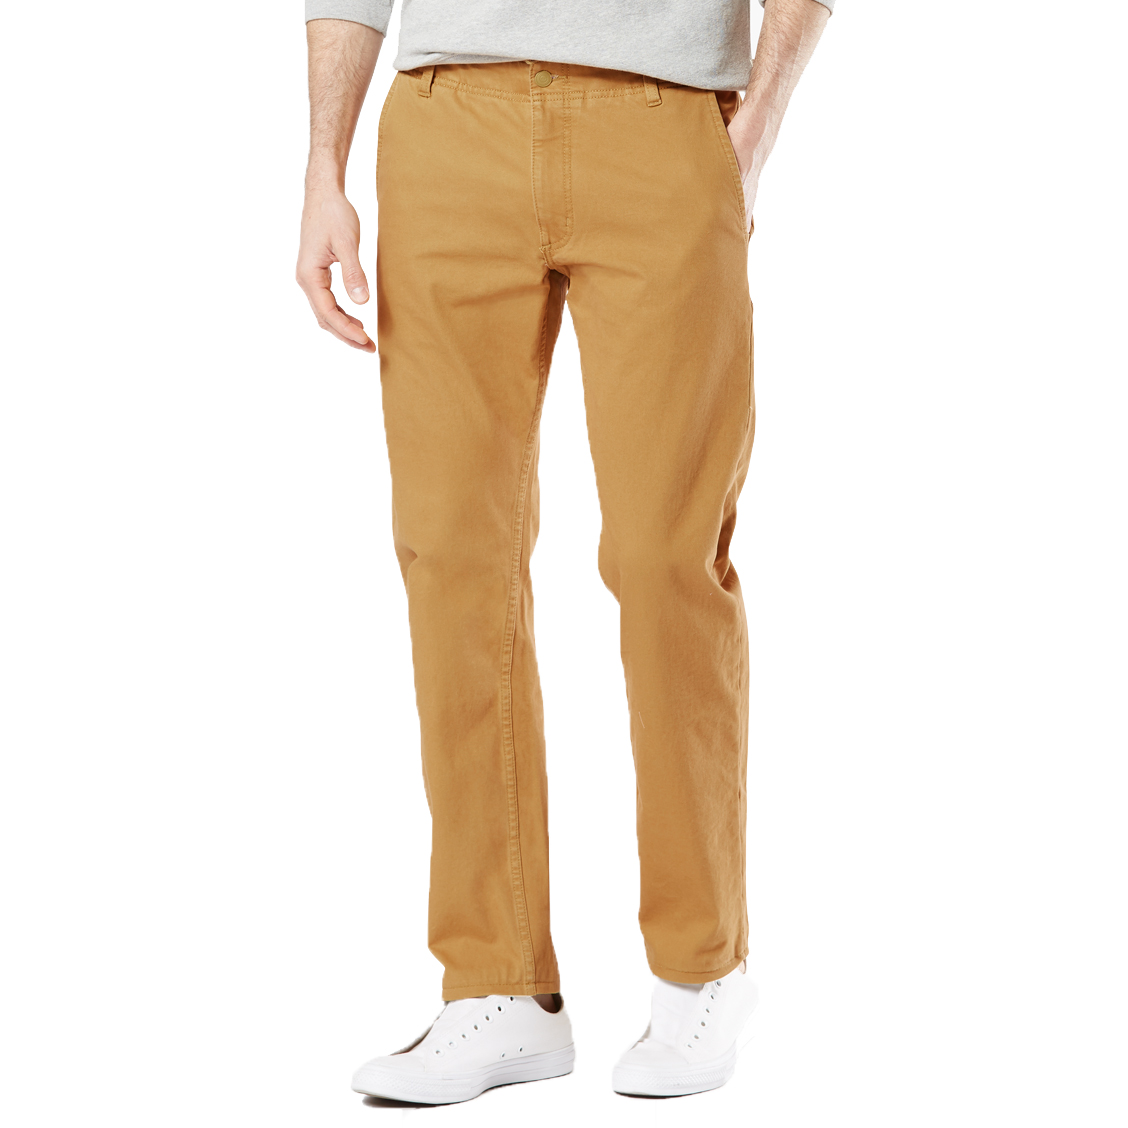 Pantalon  alpha khaki en coton stretch jaune moutarde